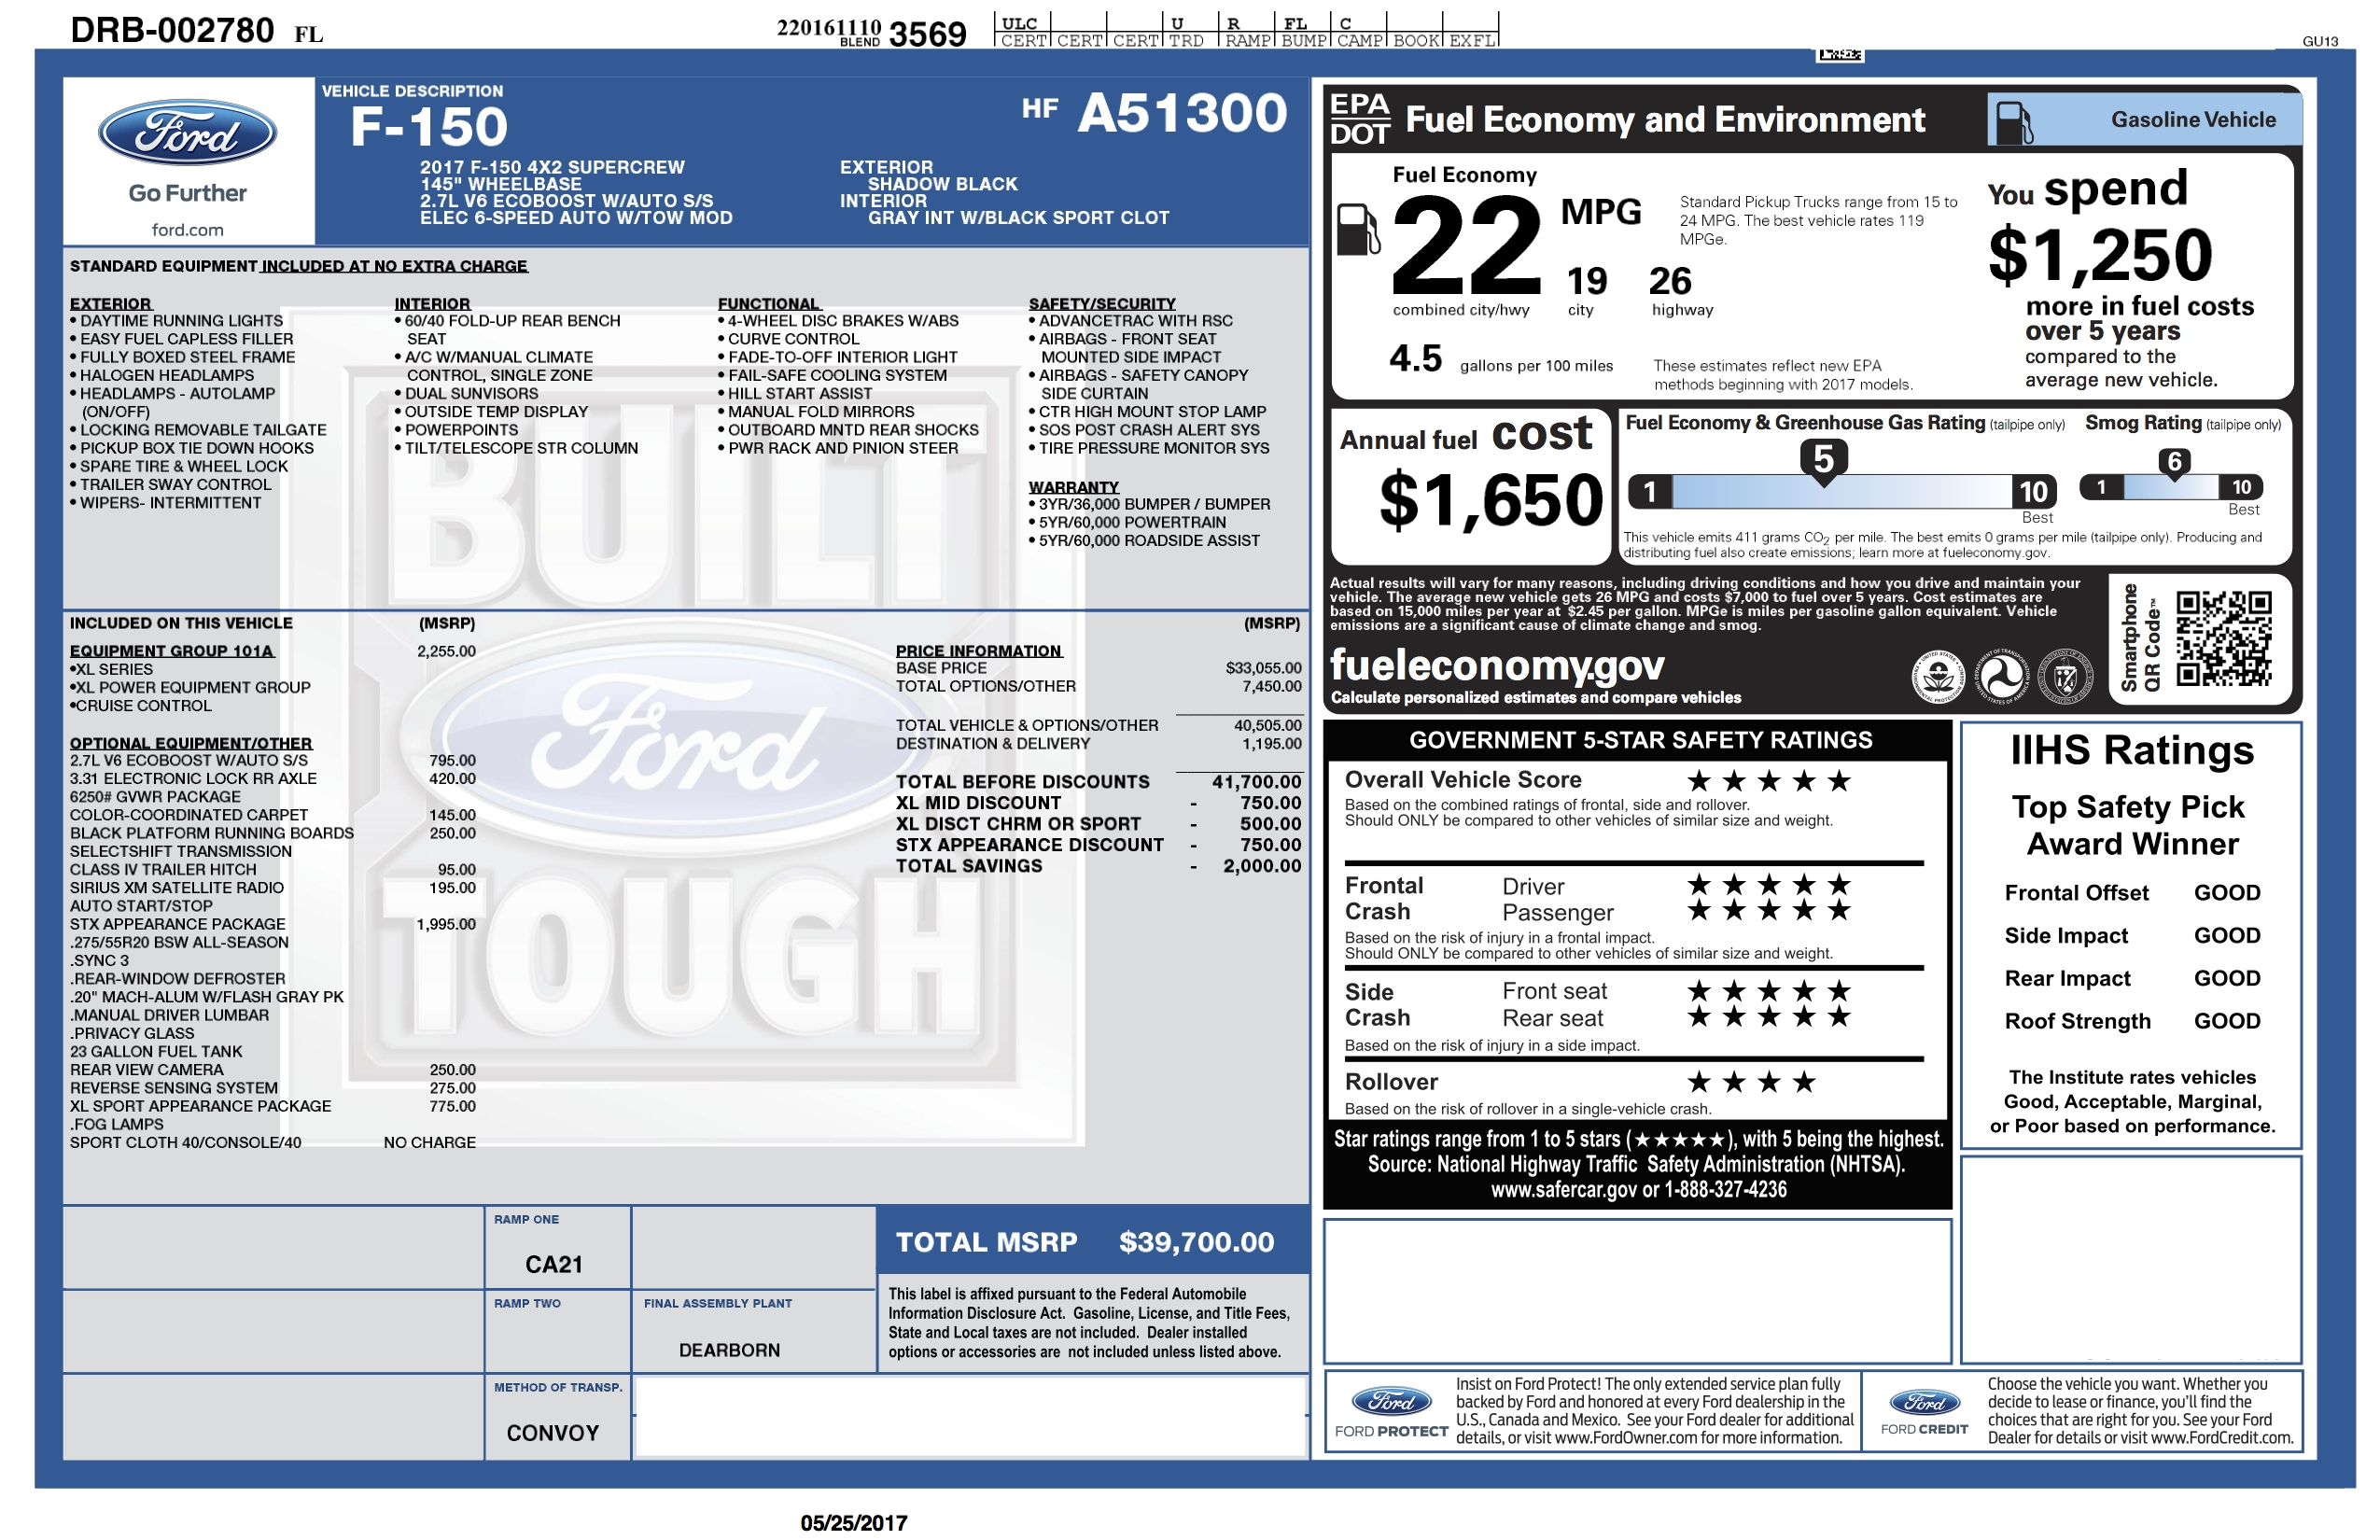 just tell us your under invoice price paid page 307 ford f150 invoice prices for new trucks